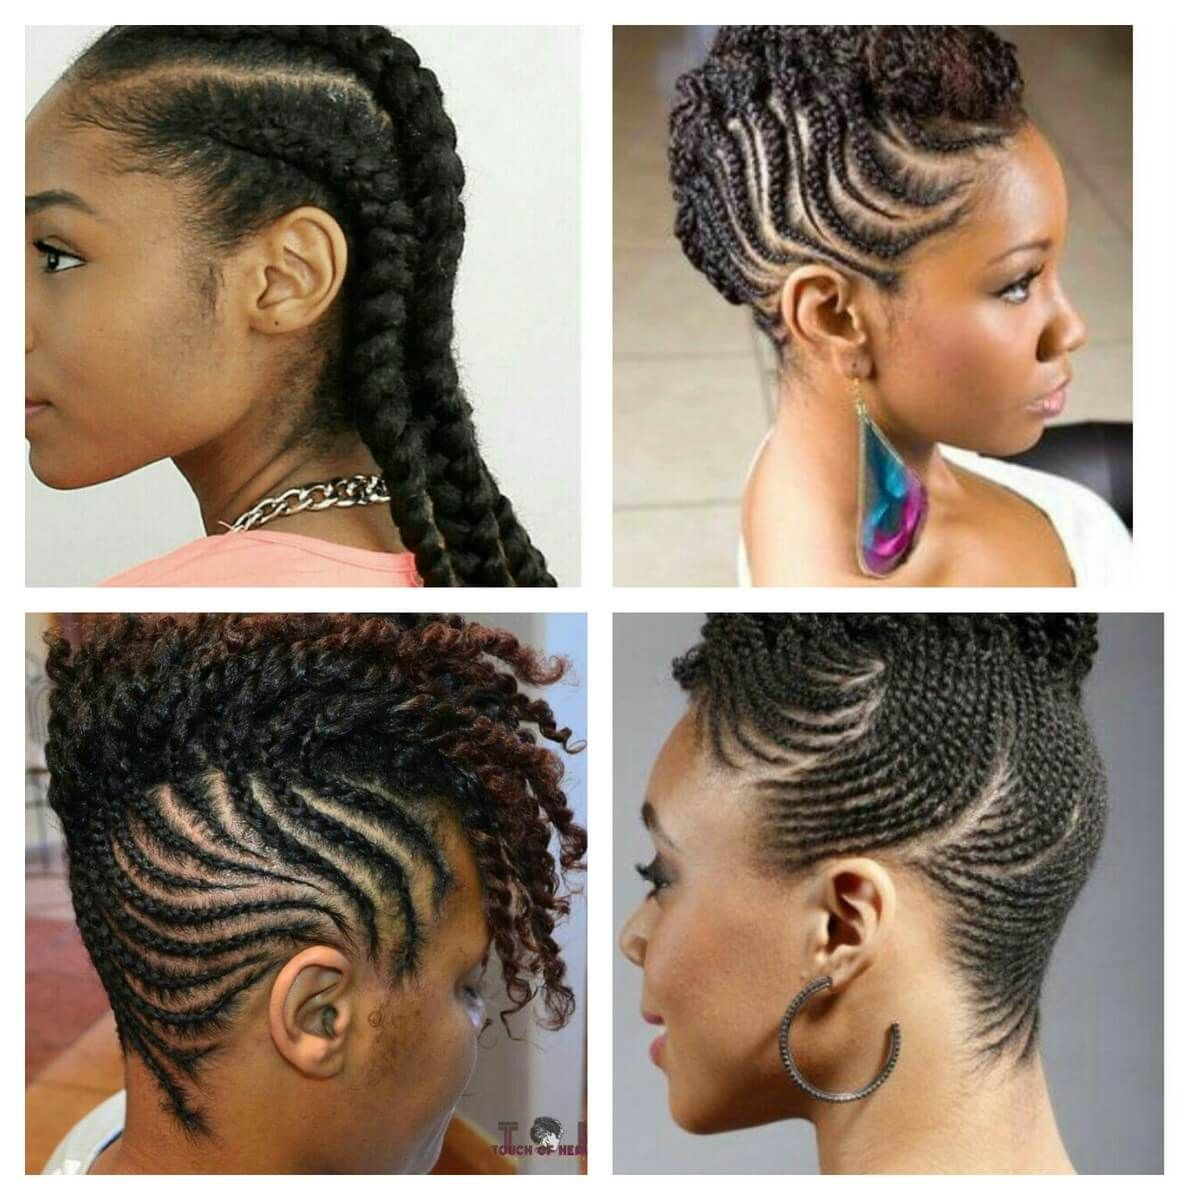 Simple Cornrow Styles For Natural Hair In 2020 Natural Hair Styles Hair Styles Natural Hair Braids